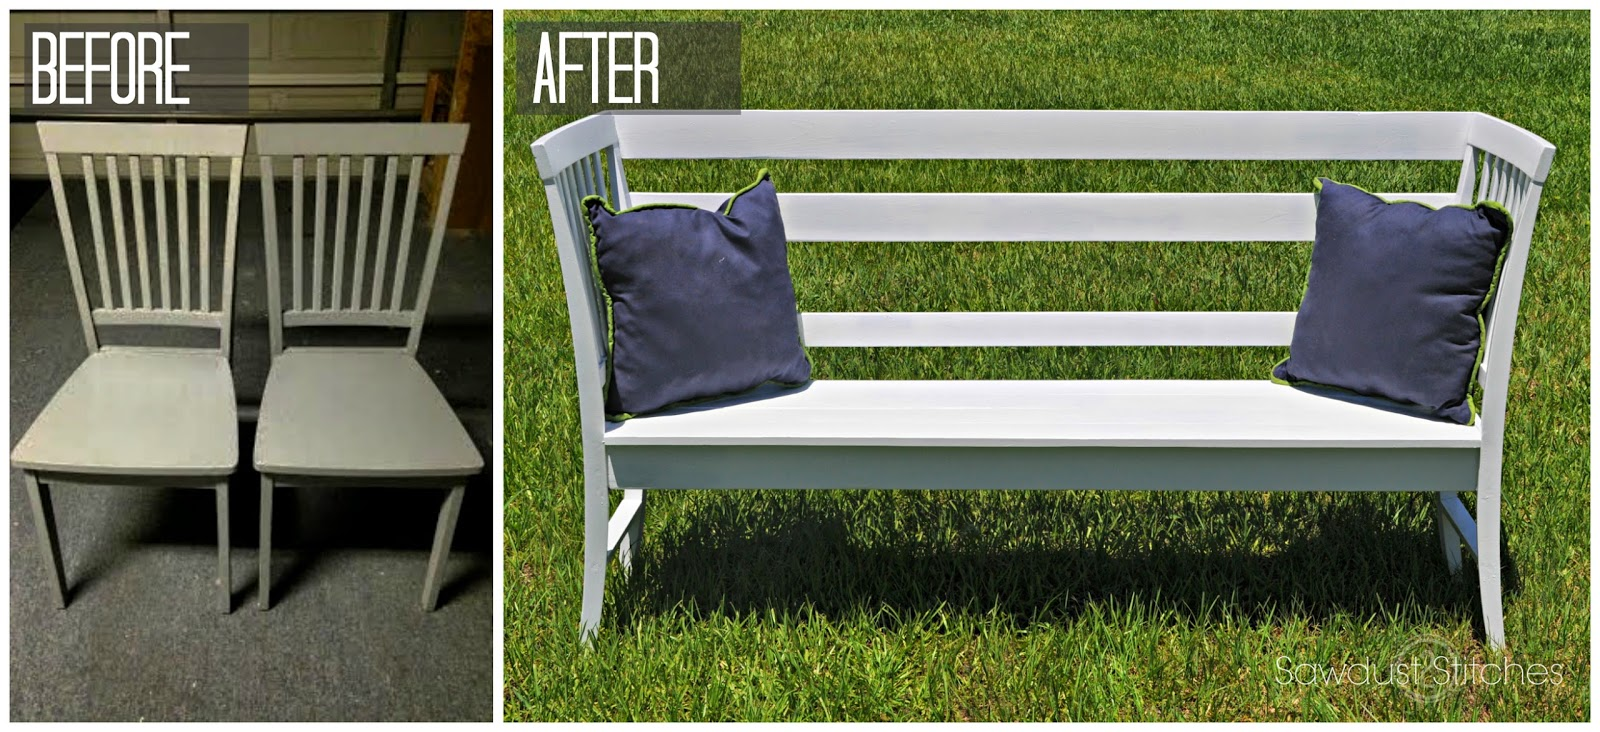 Chairbench+before+after+